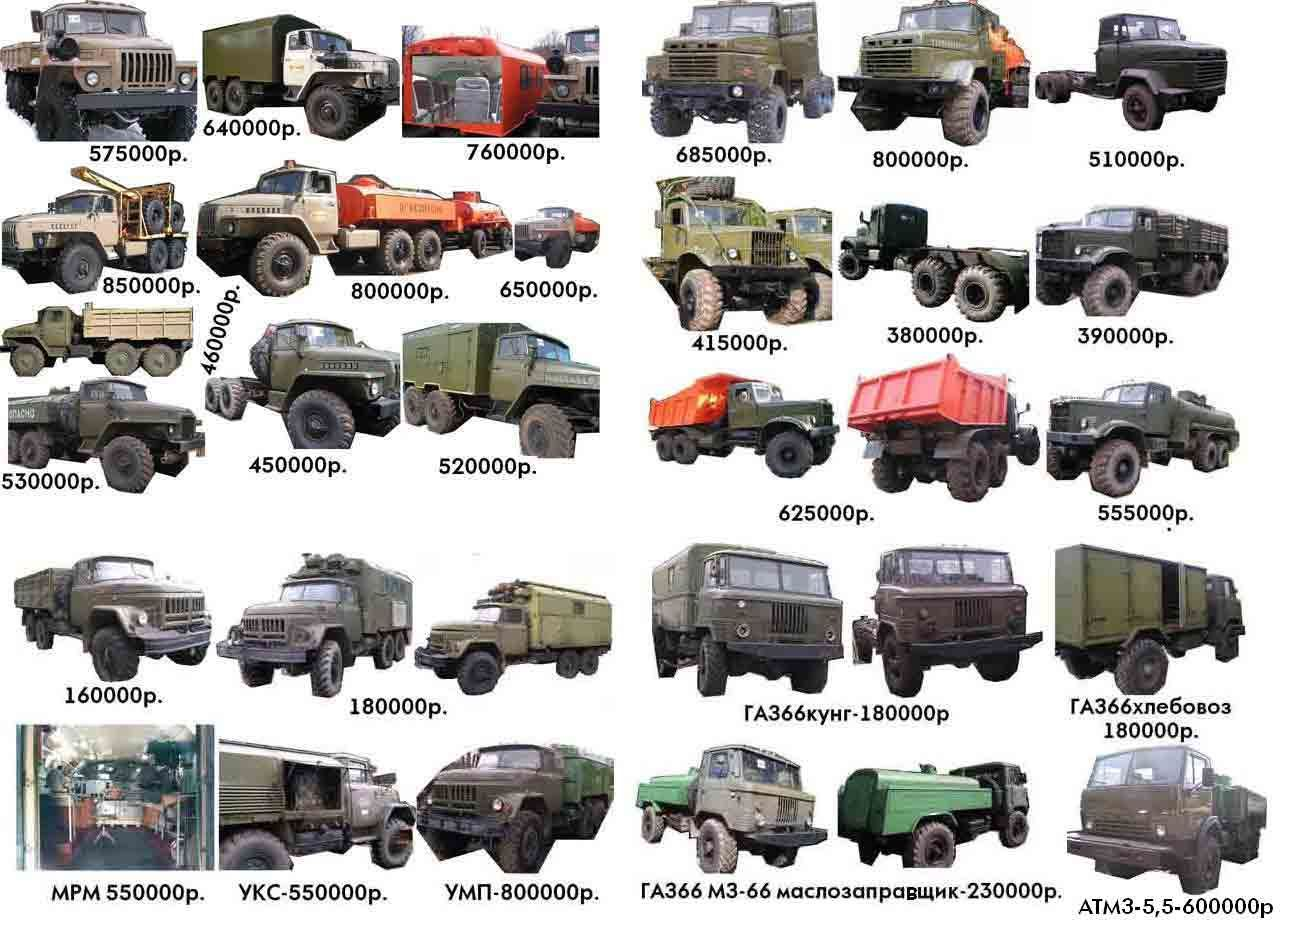 rc trucks with trailers with Ural 4320 1912954 Orig on 733 Pro Chassis For 3 Axle Rigid Trucks And Tractor Trucks likewise Sprayers additionally Caterpillar Excavator Cat 345 P 1245 as well Watch further Watch.